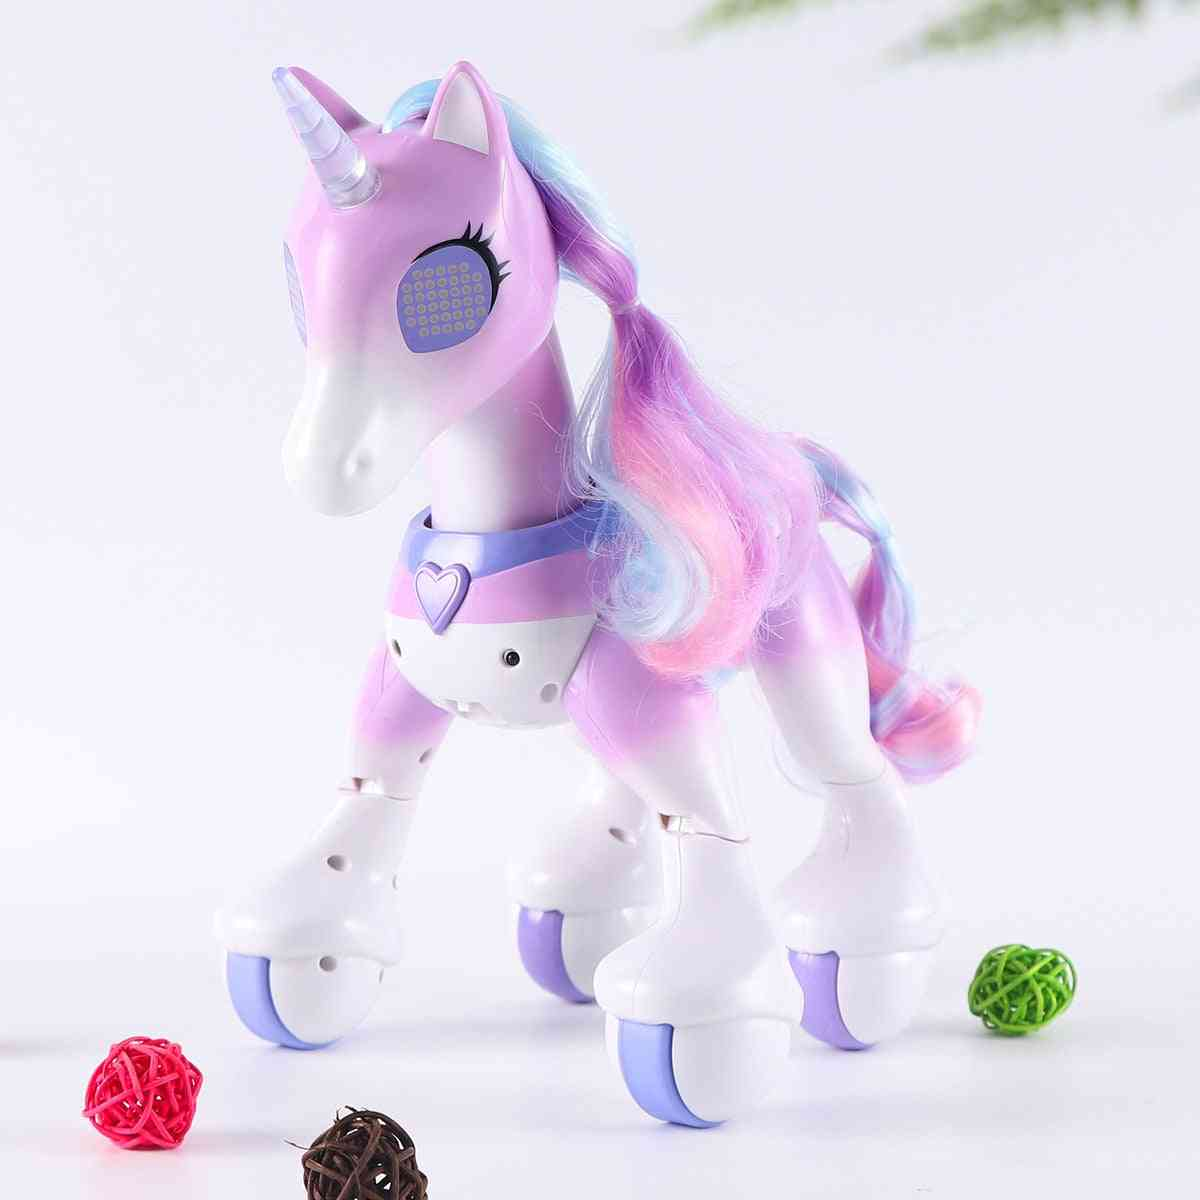 Horse Unicorns, Robot Cute Animal, Induction Remote Control, Electric